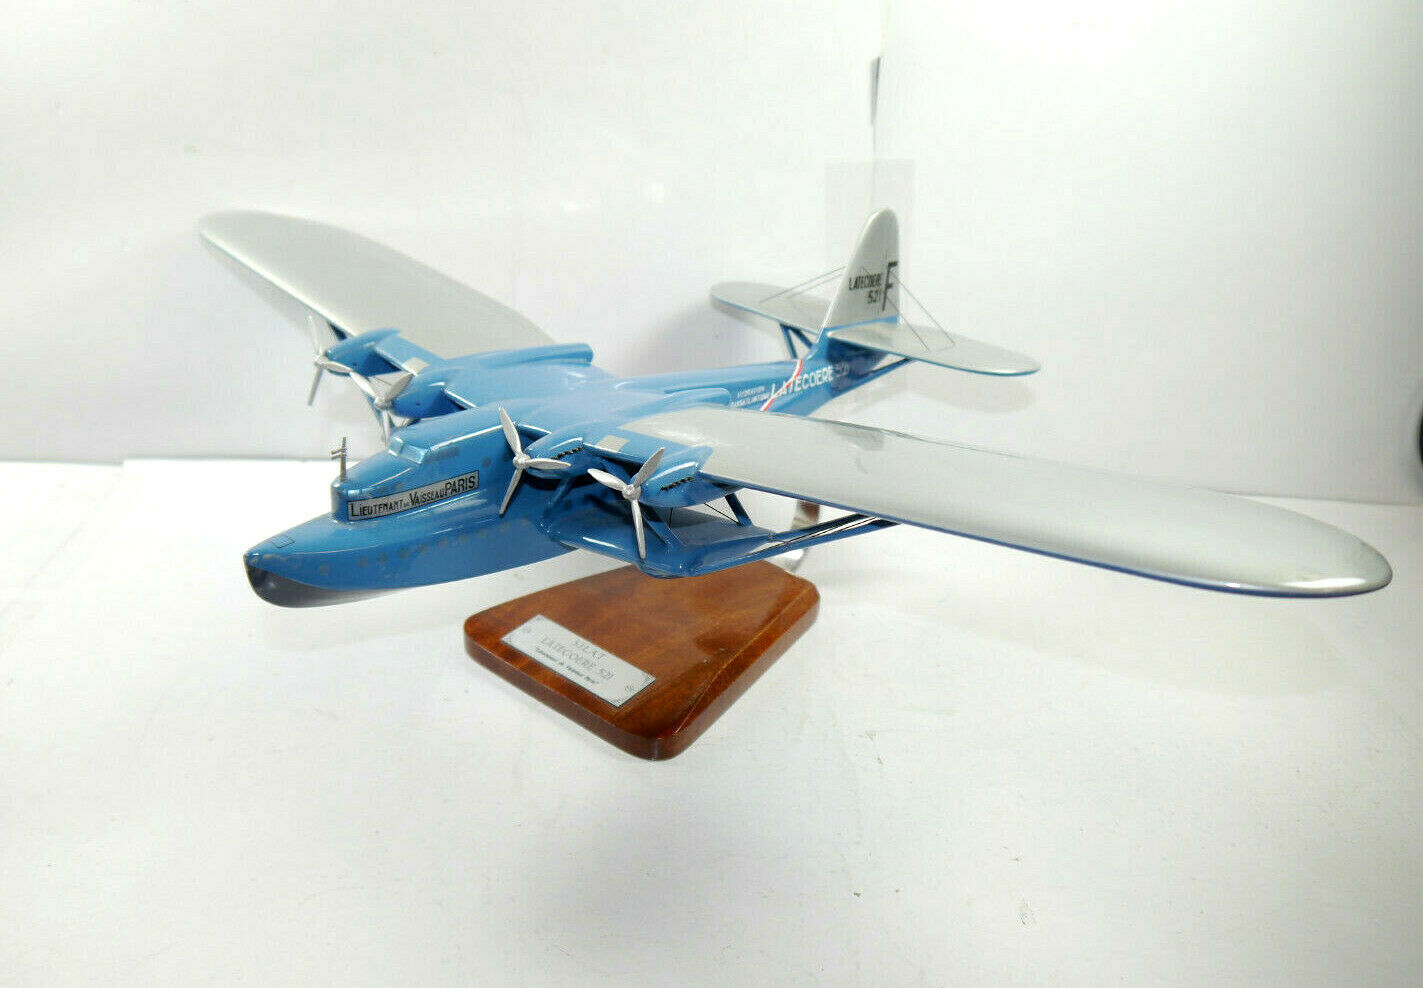 Pilot Station Models S. I. L. a. T.Latecoere 521 Lieutnant Paris Aircraft F17